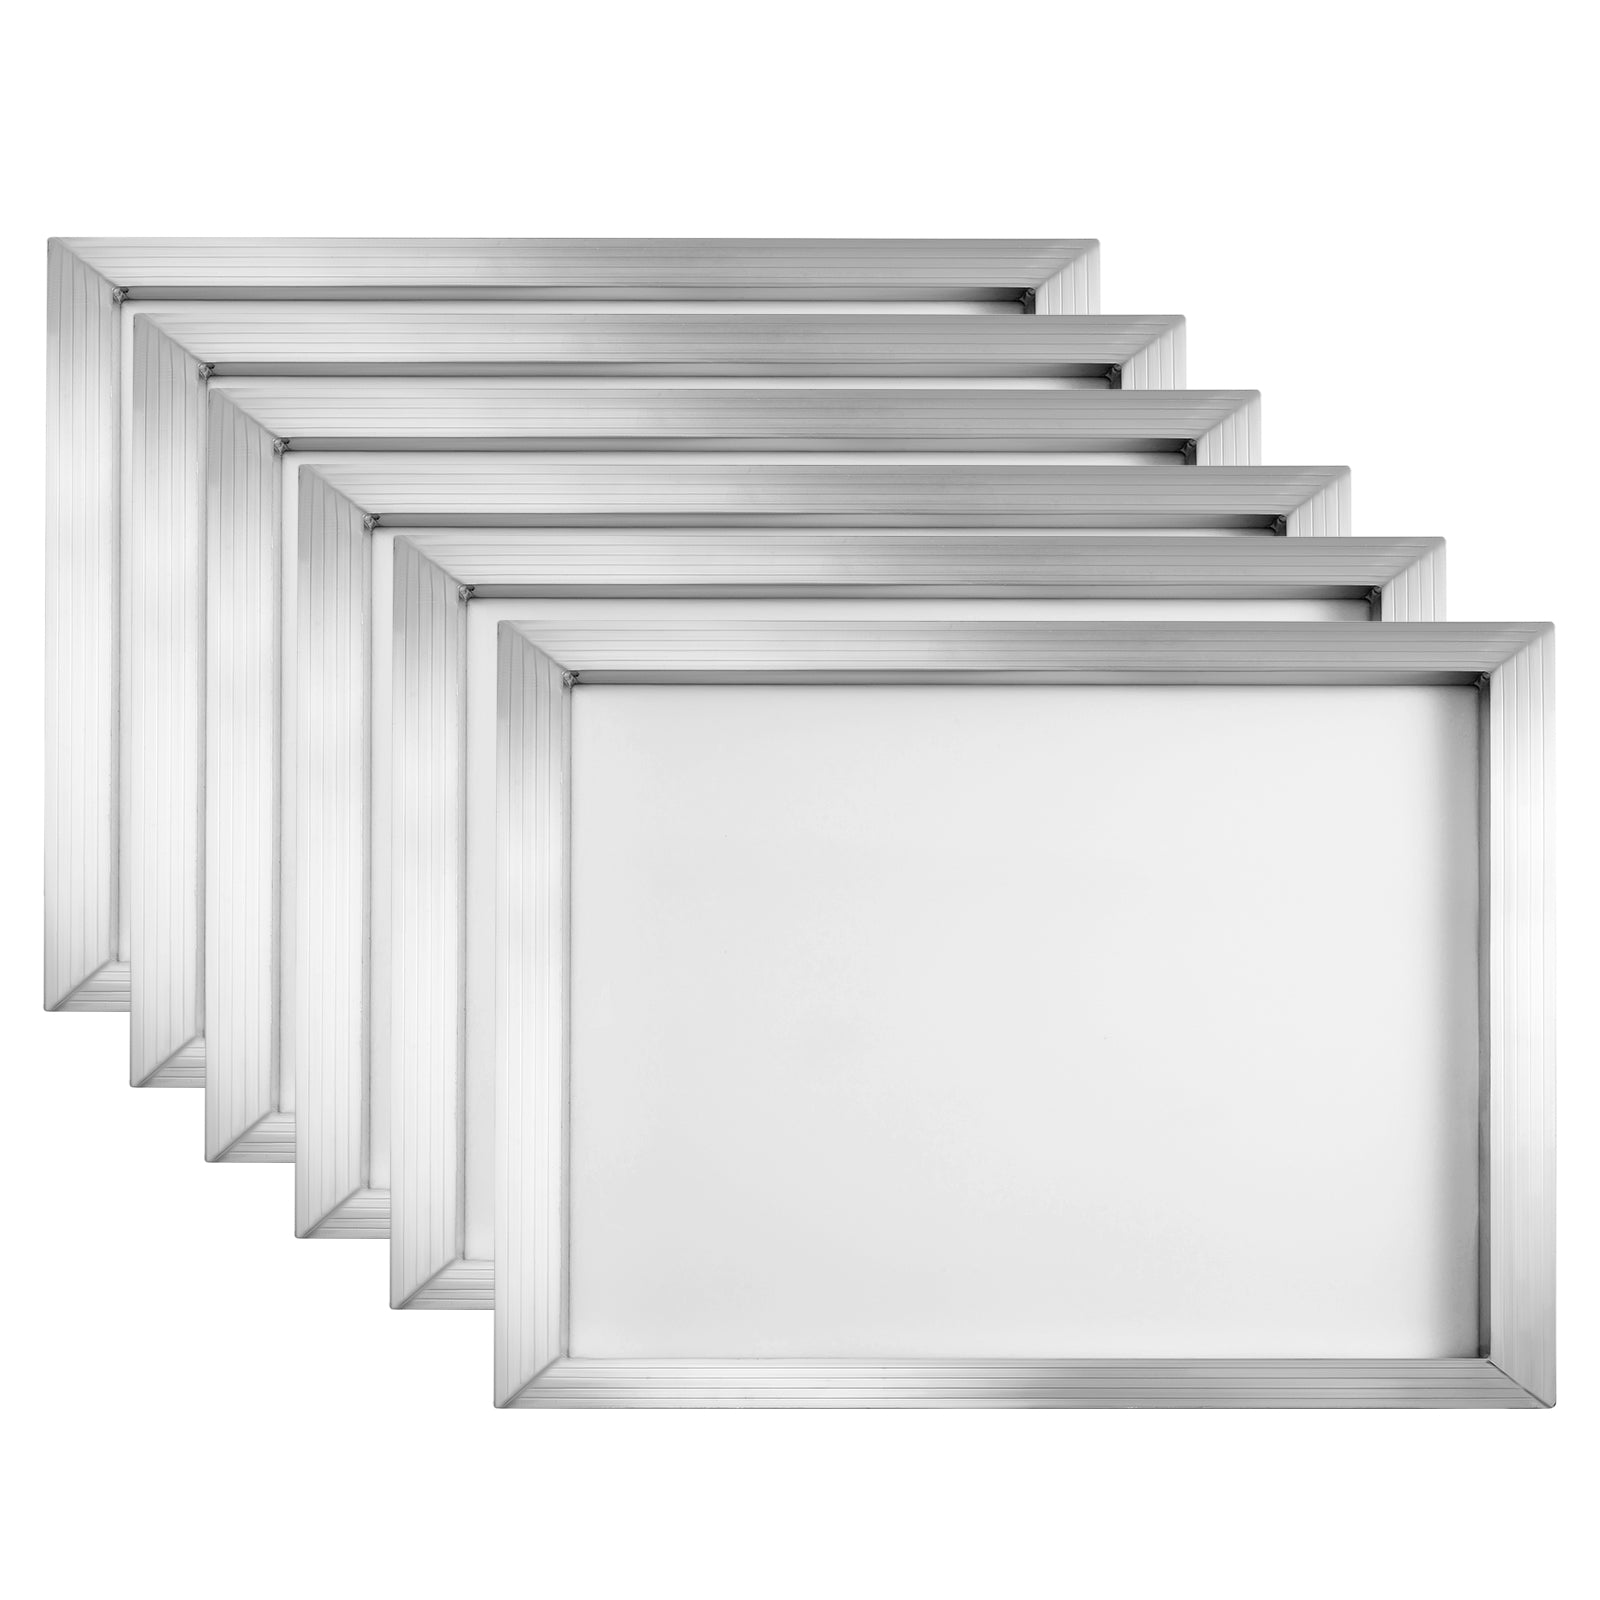 "6 Pack 20""x24"" Aluminum Frame Silk Screen Printing Frames With 110 Mesh Diy"